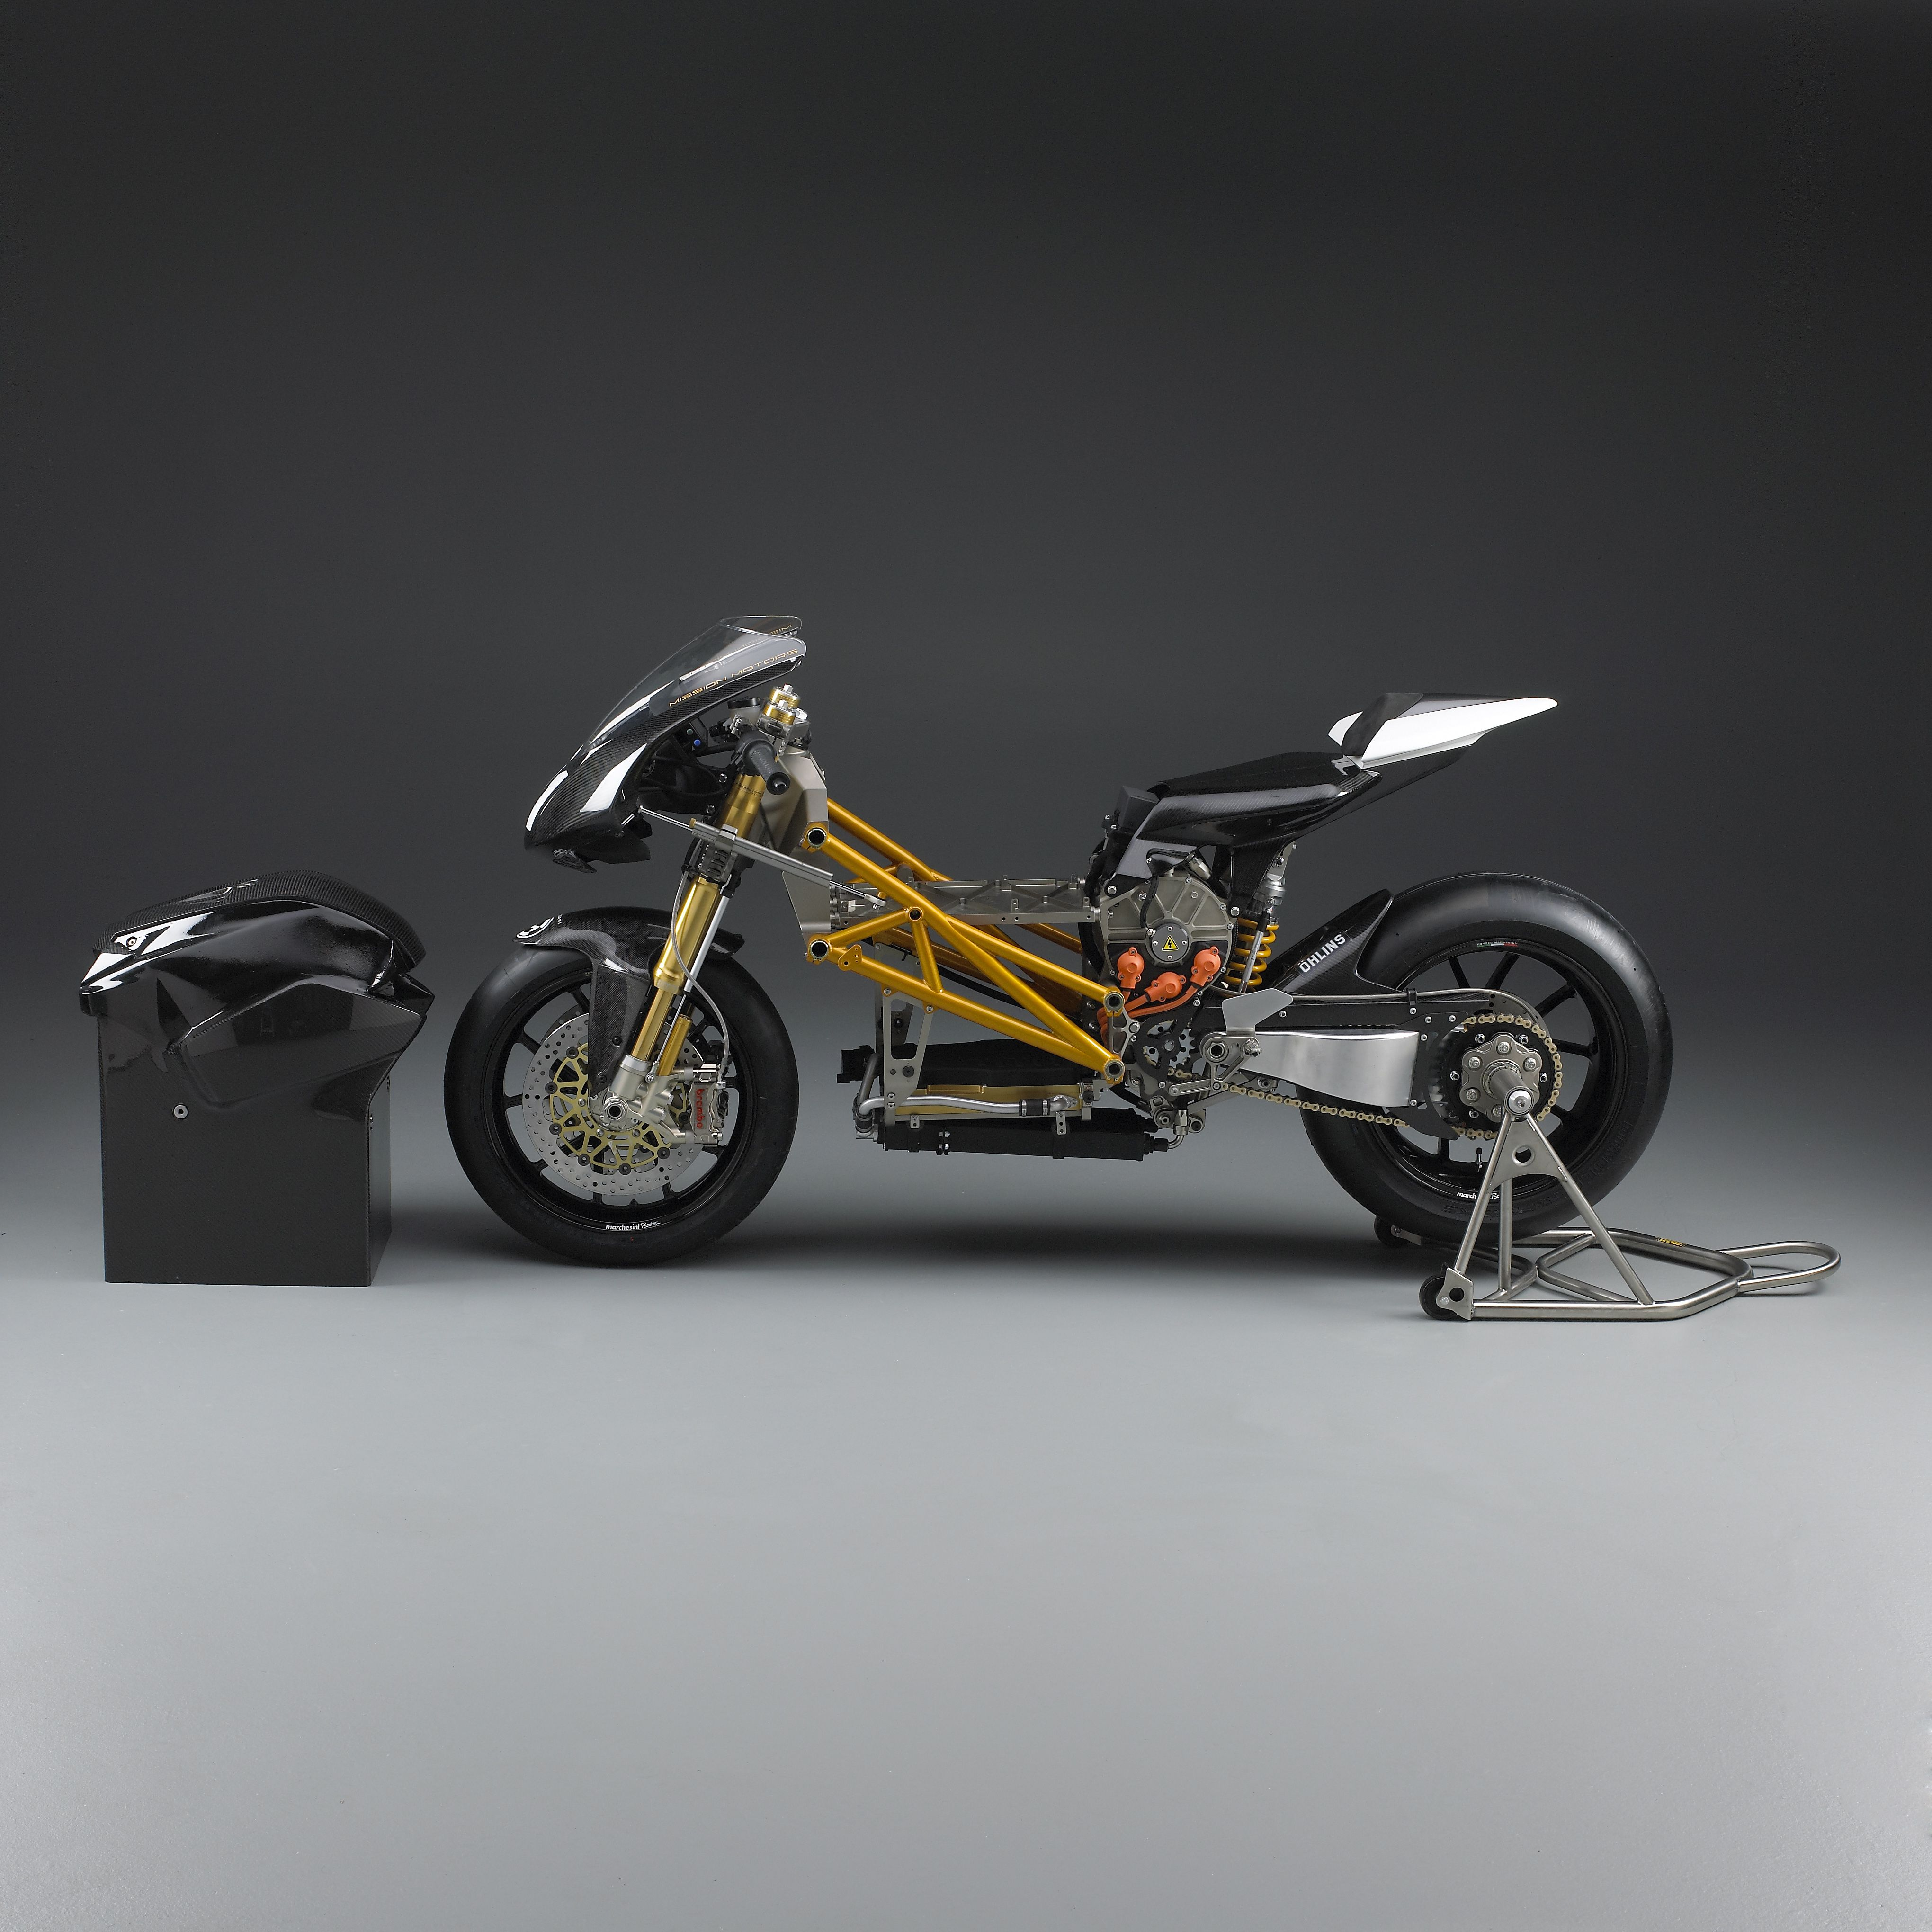 Mission Motors Chassis Battery With Images Electric Motorcycle Motorcycle Electric Motorbike